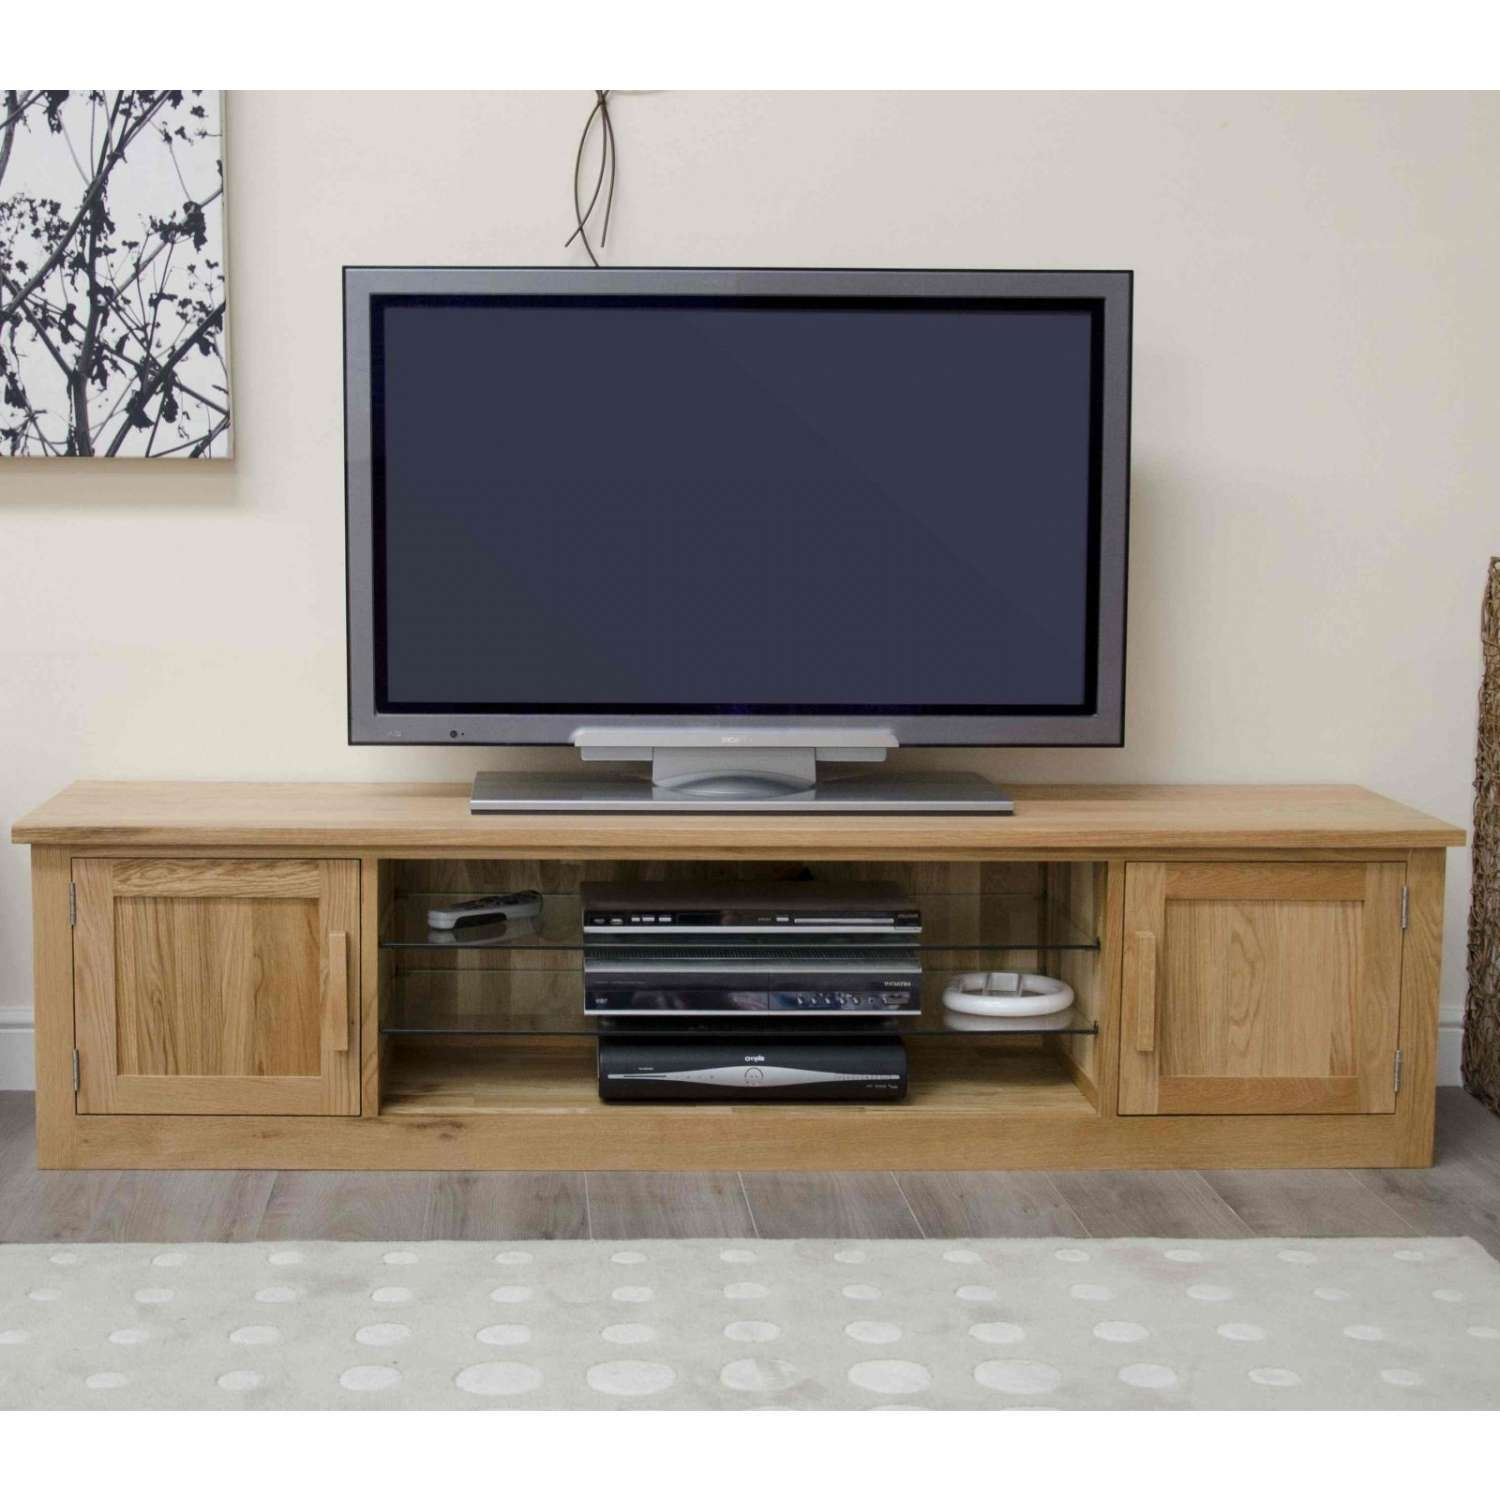 Arden Solid Oak Living Room Furniture Large Widescreen Tv Cabinet With Regard To Widescreen Tv Stands (View 1 of 15)